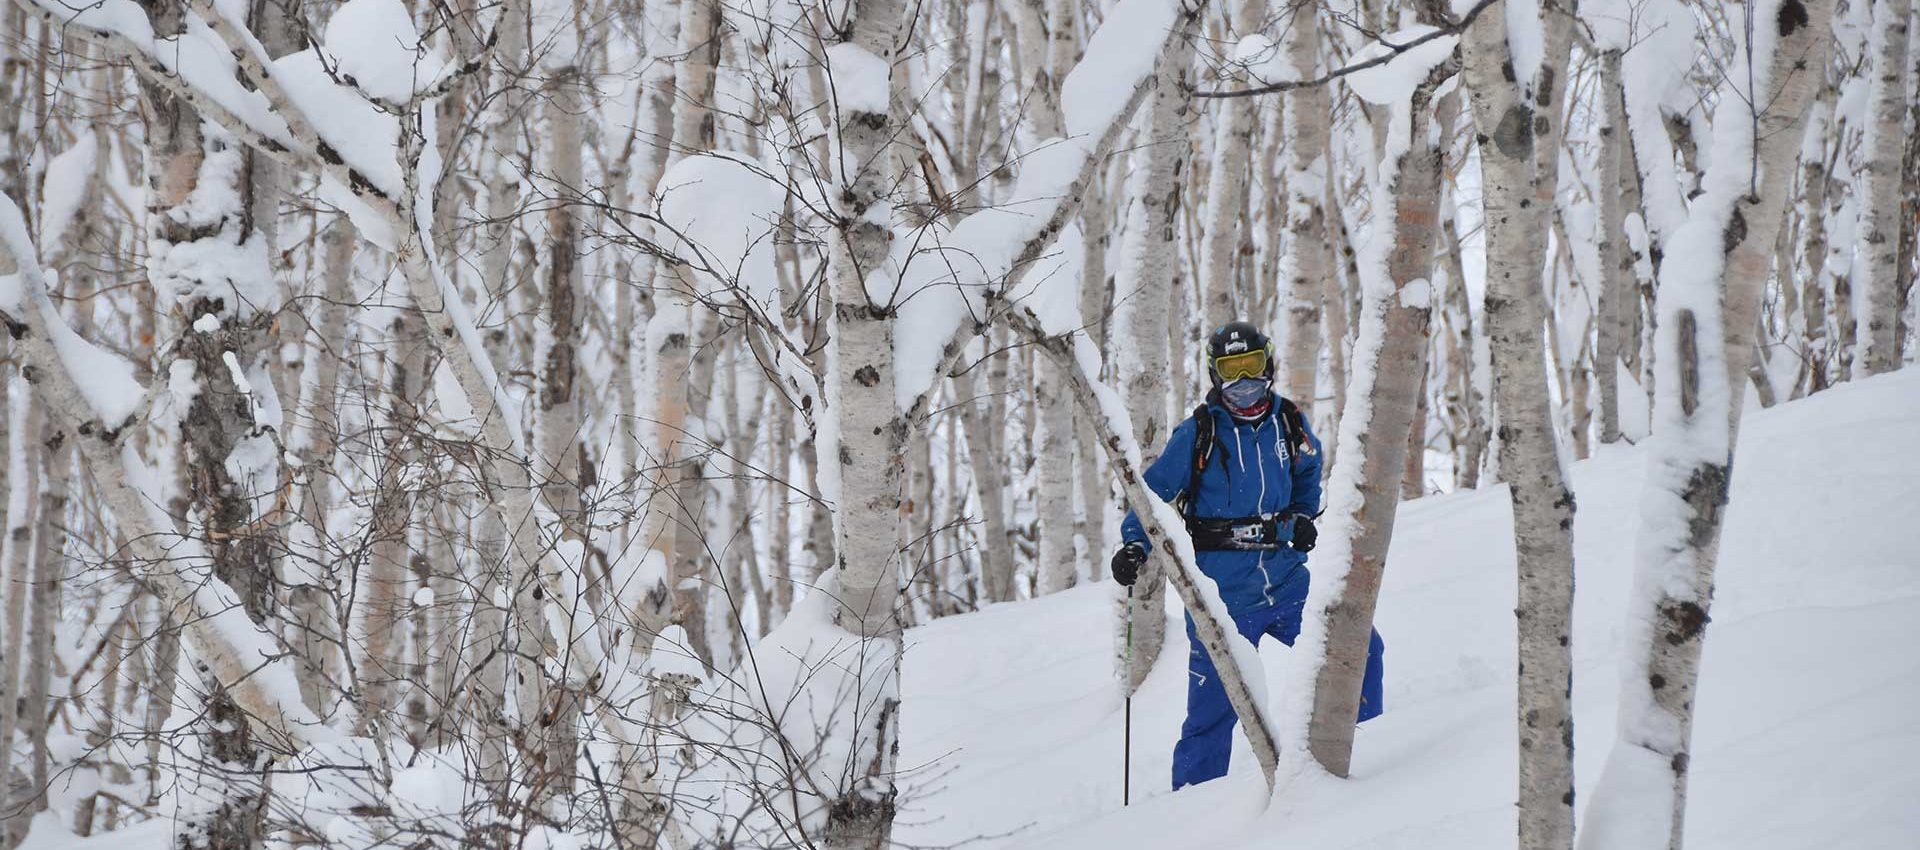 Birch forest trails provide the best natural slalom track.